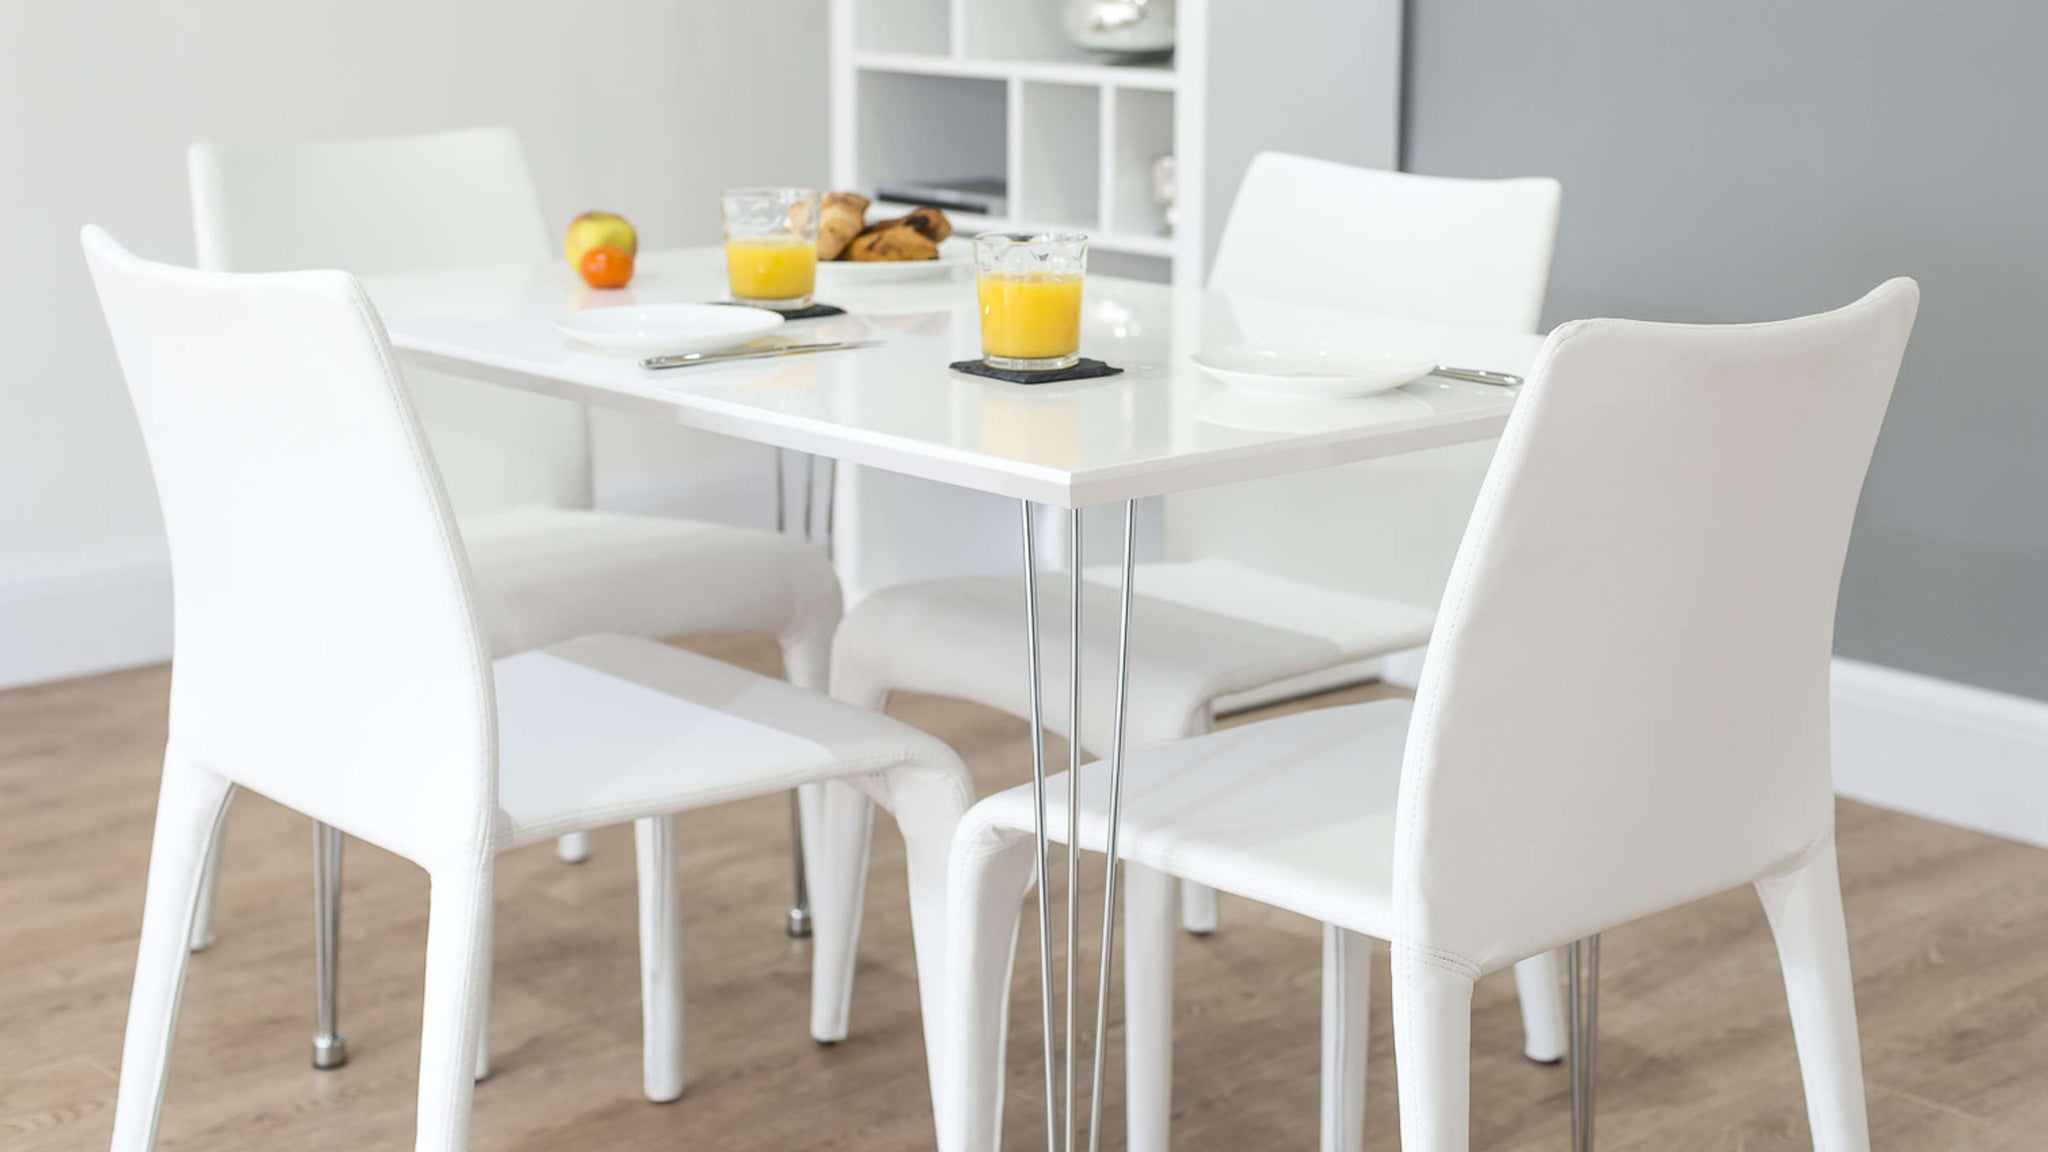 Stylish Dining Chairs and White Gloss Dining Table